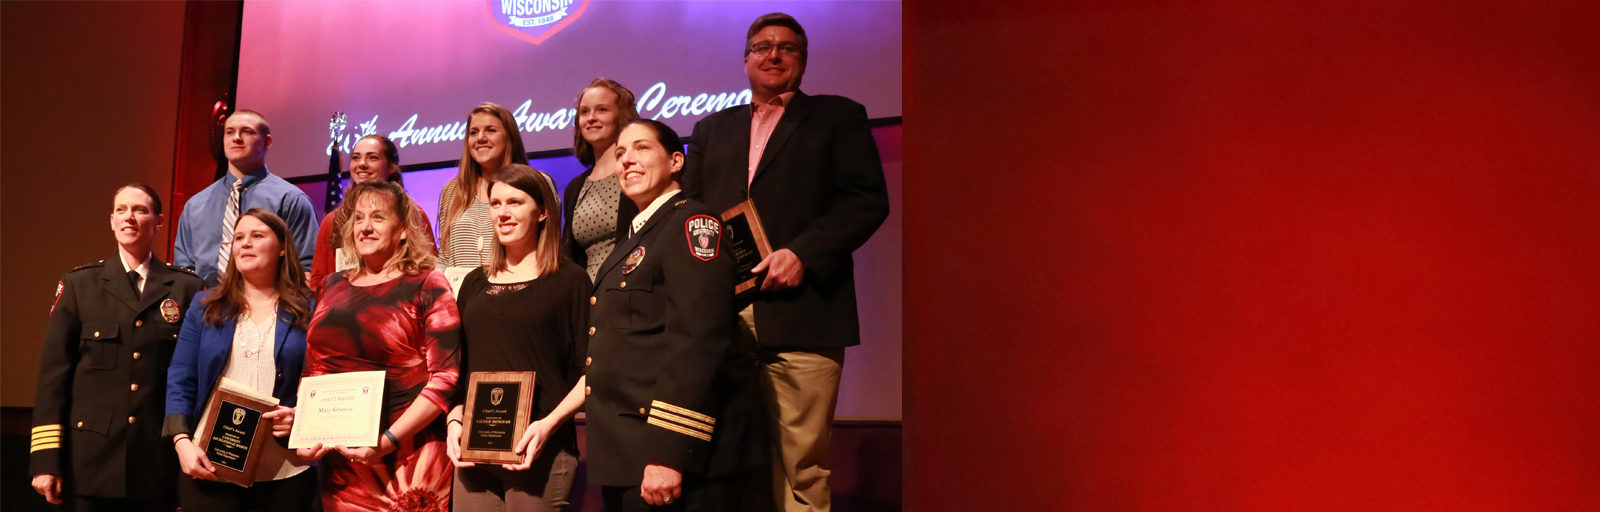 UHS honored at UWPD awards ceremony